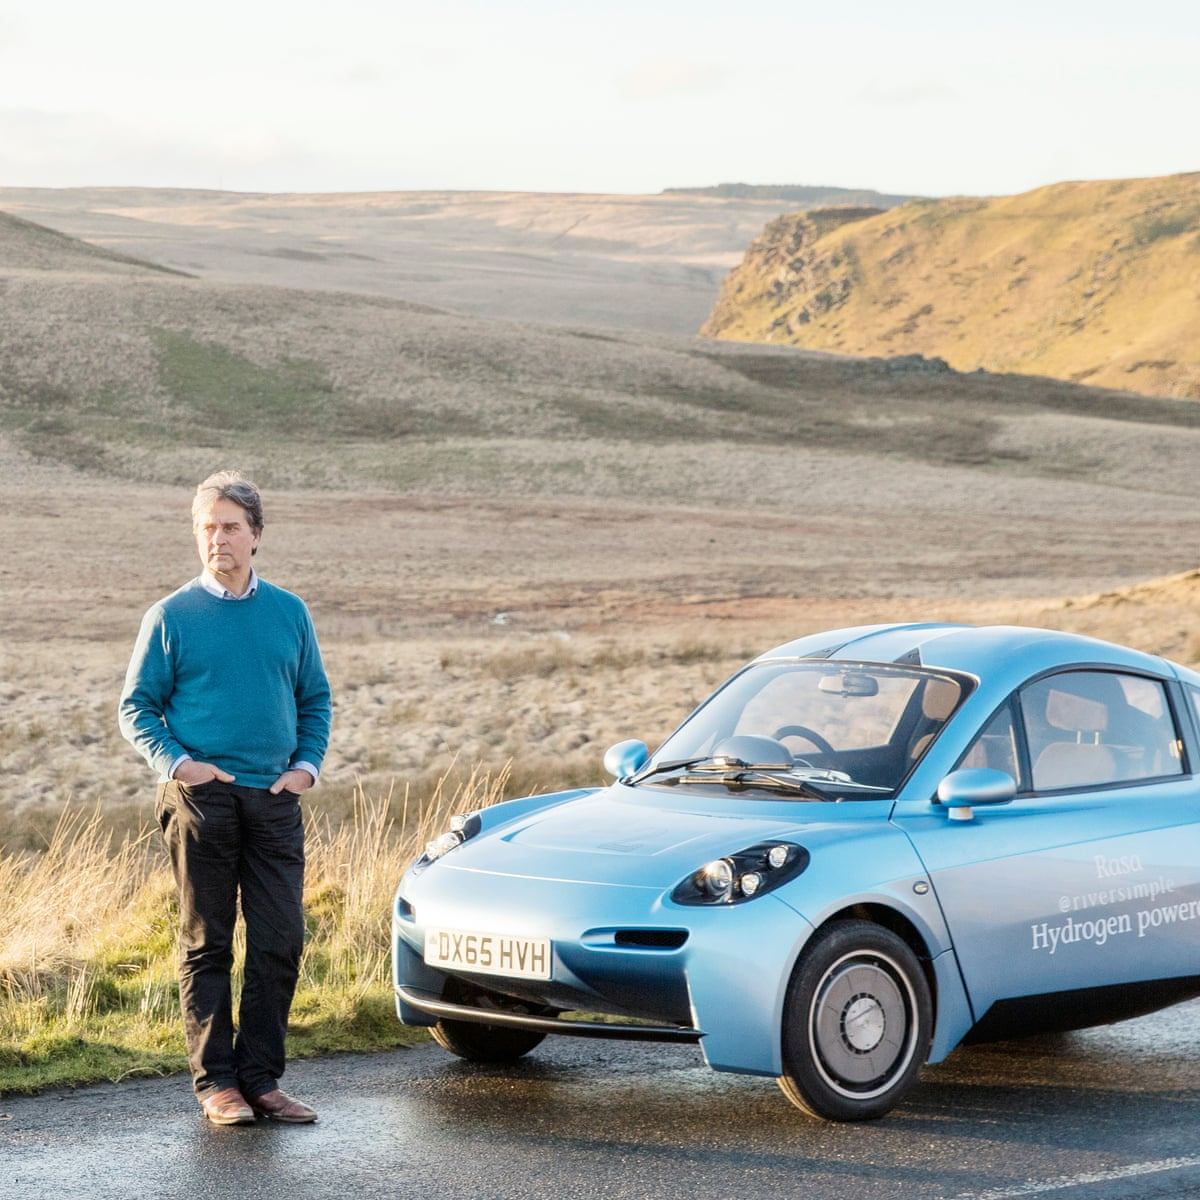 It S A No Brainer Are Hydrogen Cars The Future Motoring The Guardian